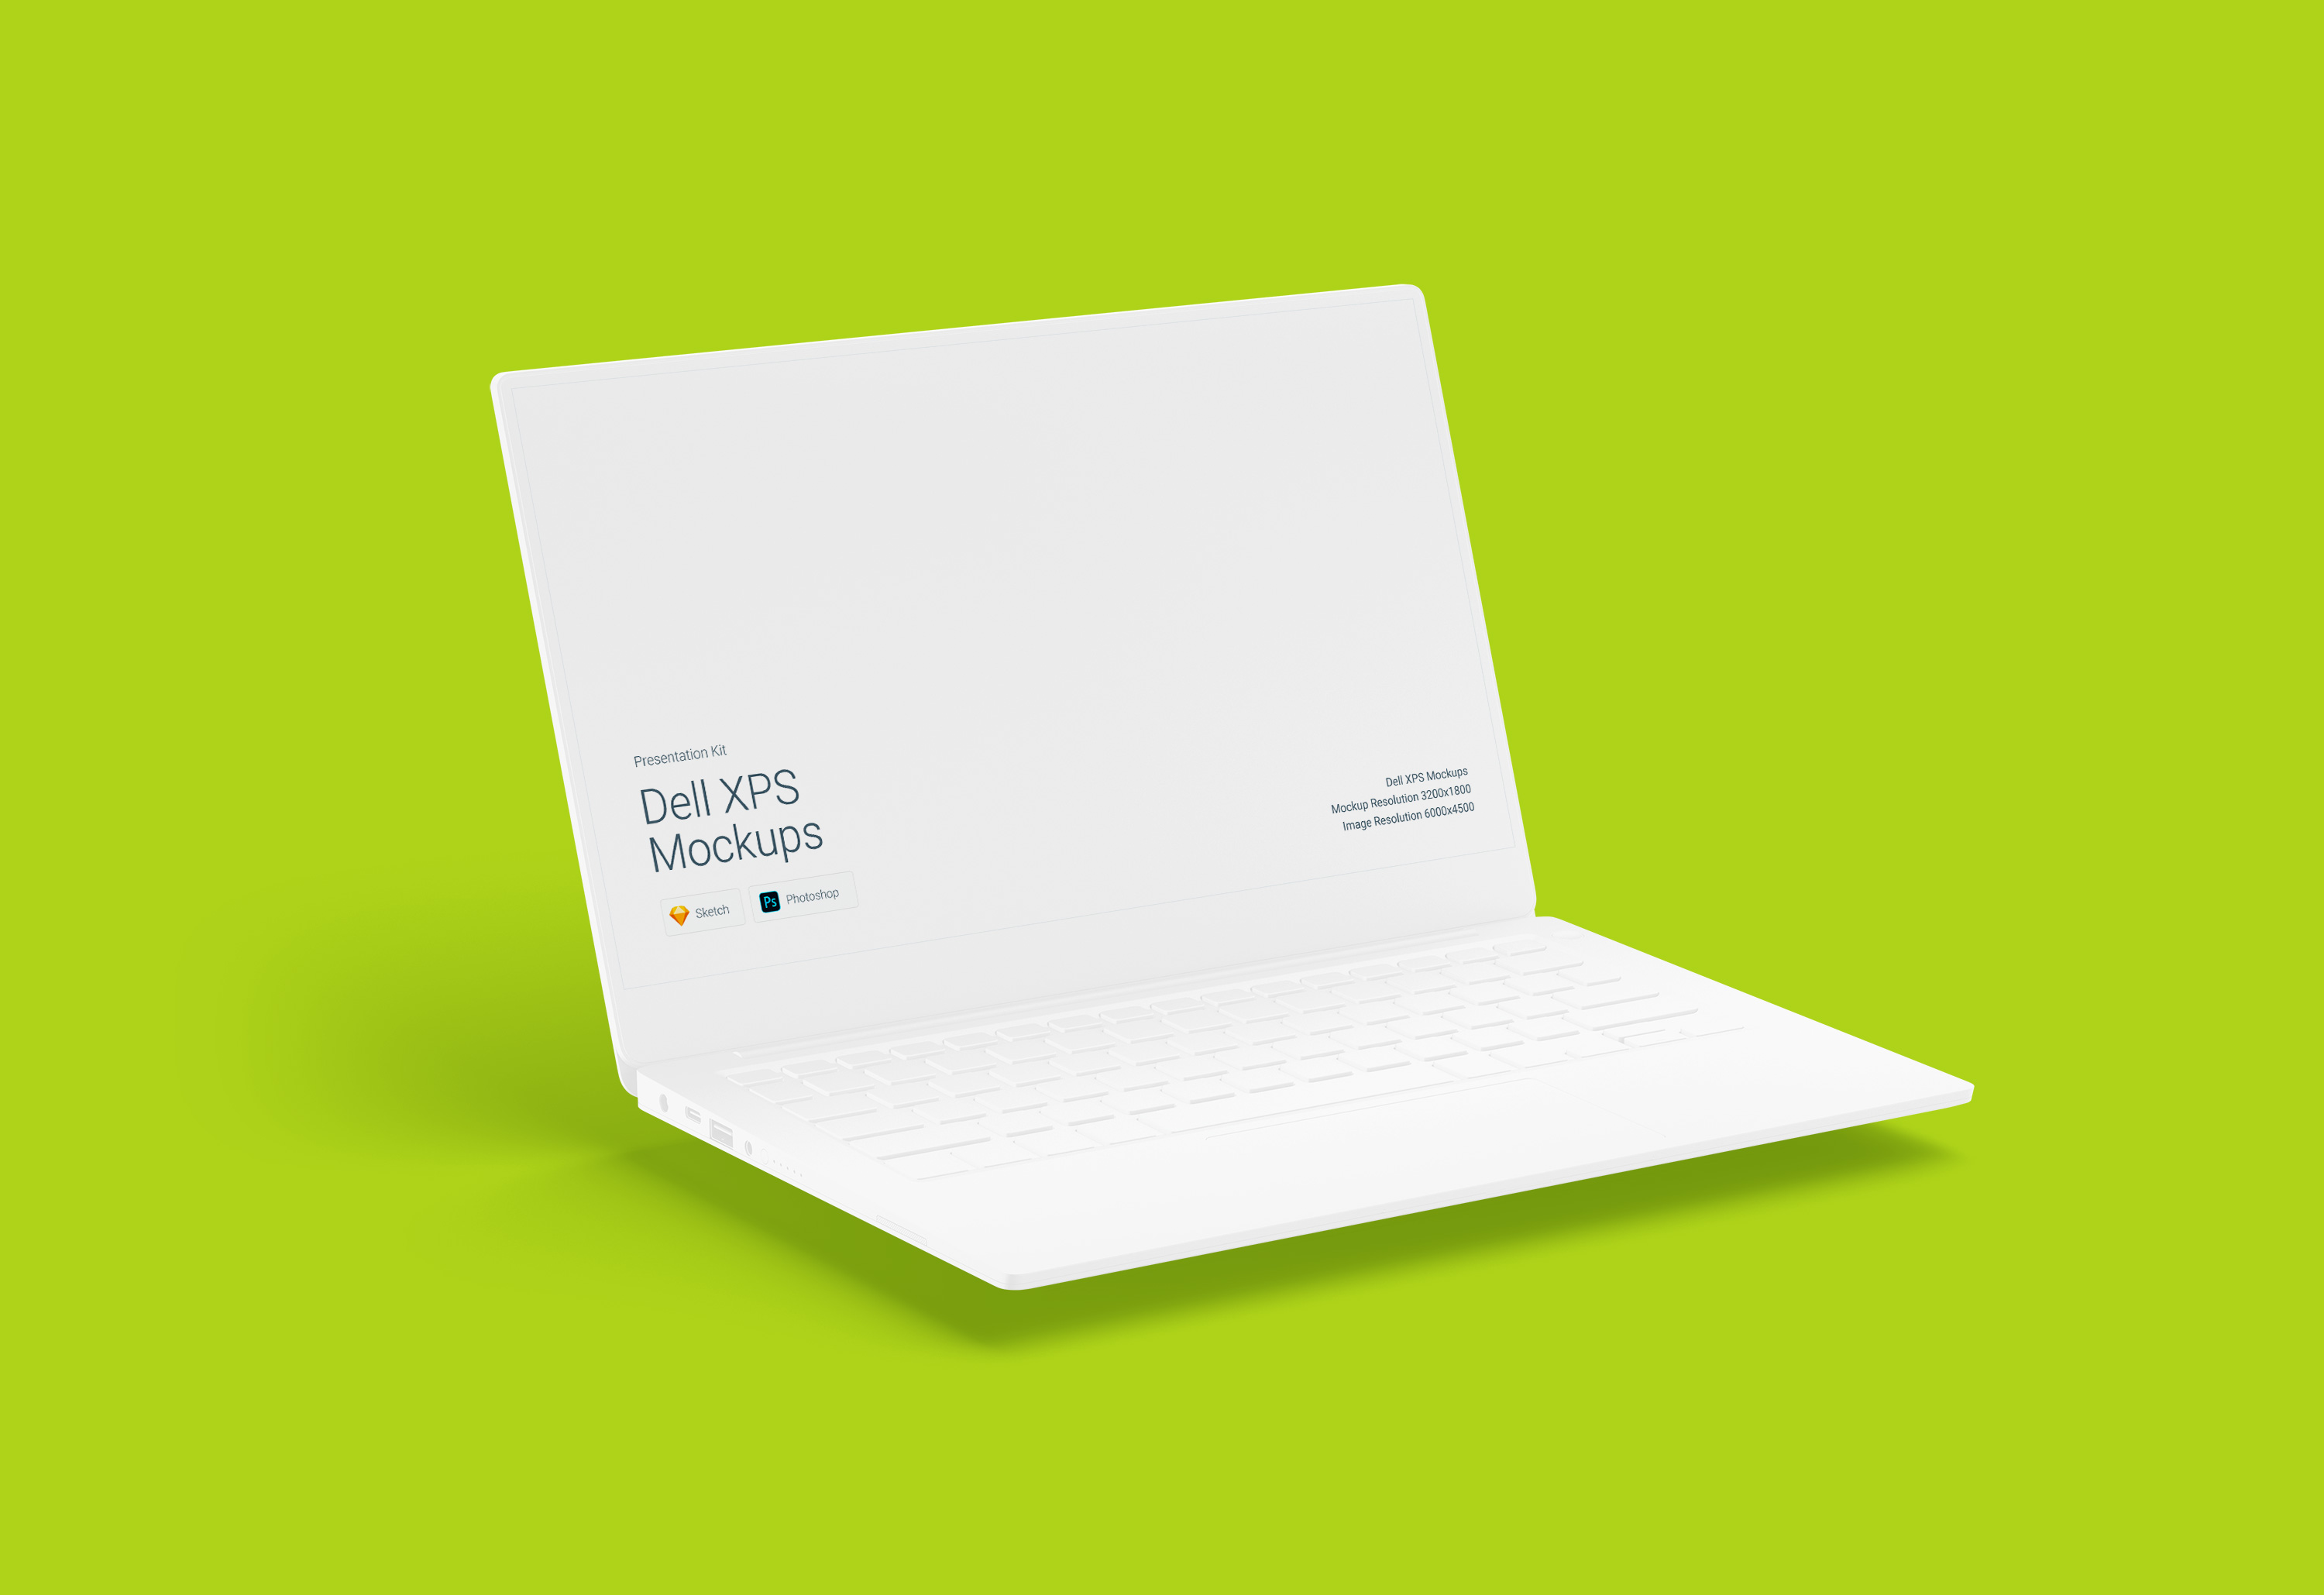 Download Dell XPS Mockup for Sketch and Photoshop